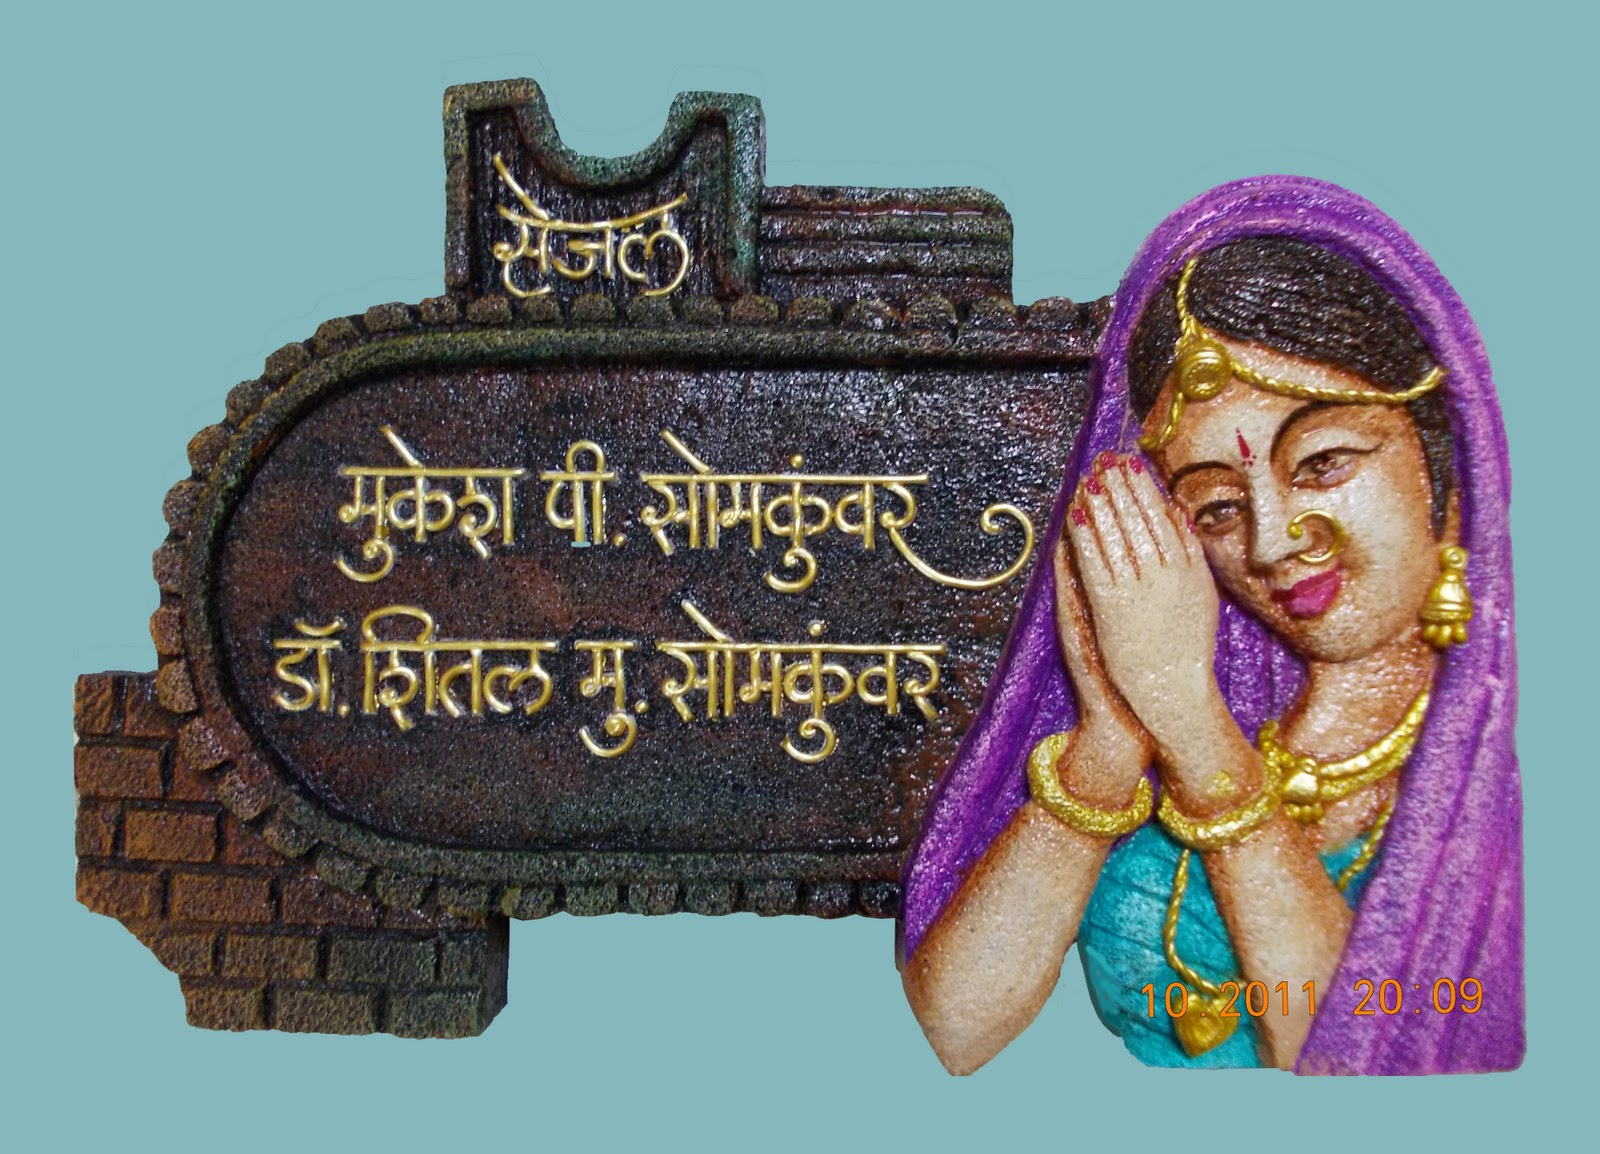 Mural art by datta vaidya october 2011 for Mural name plate designs